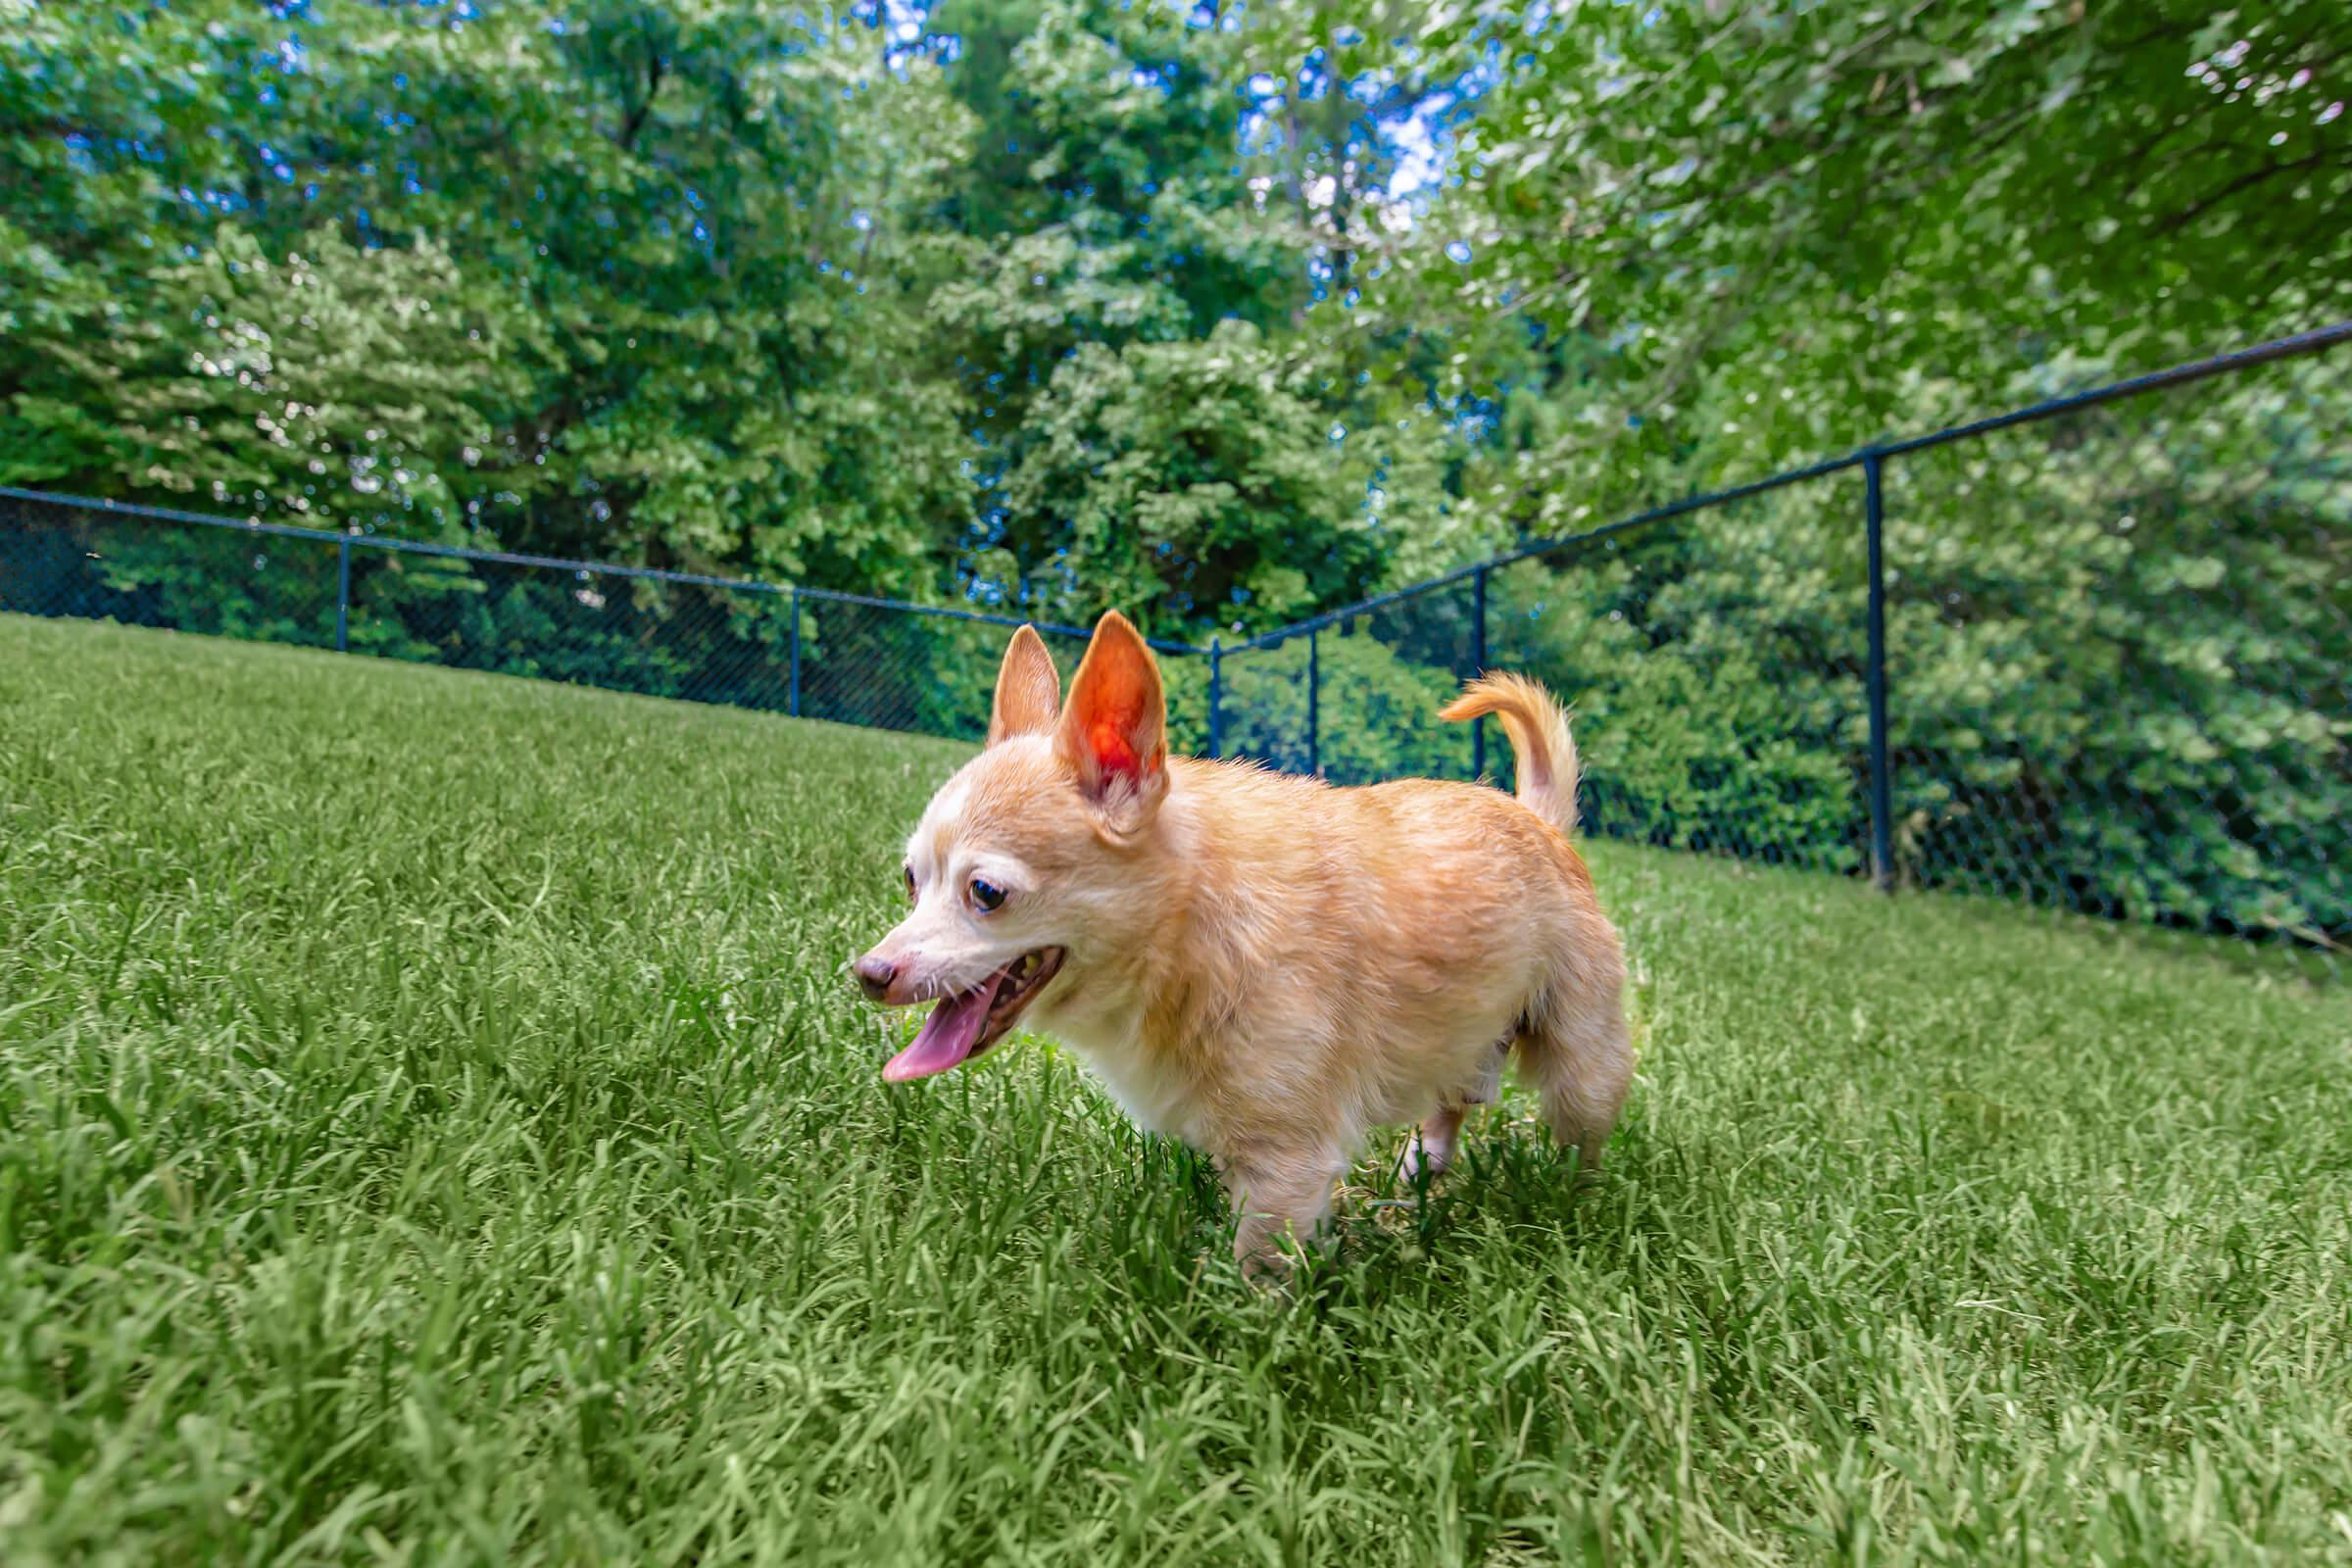 a dog standing on top of a grass covered field